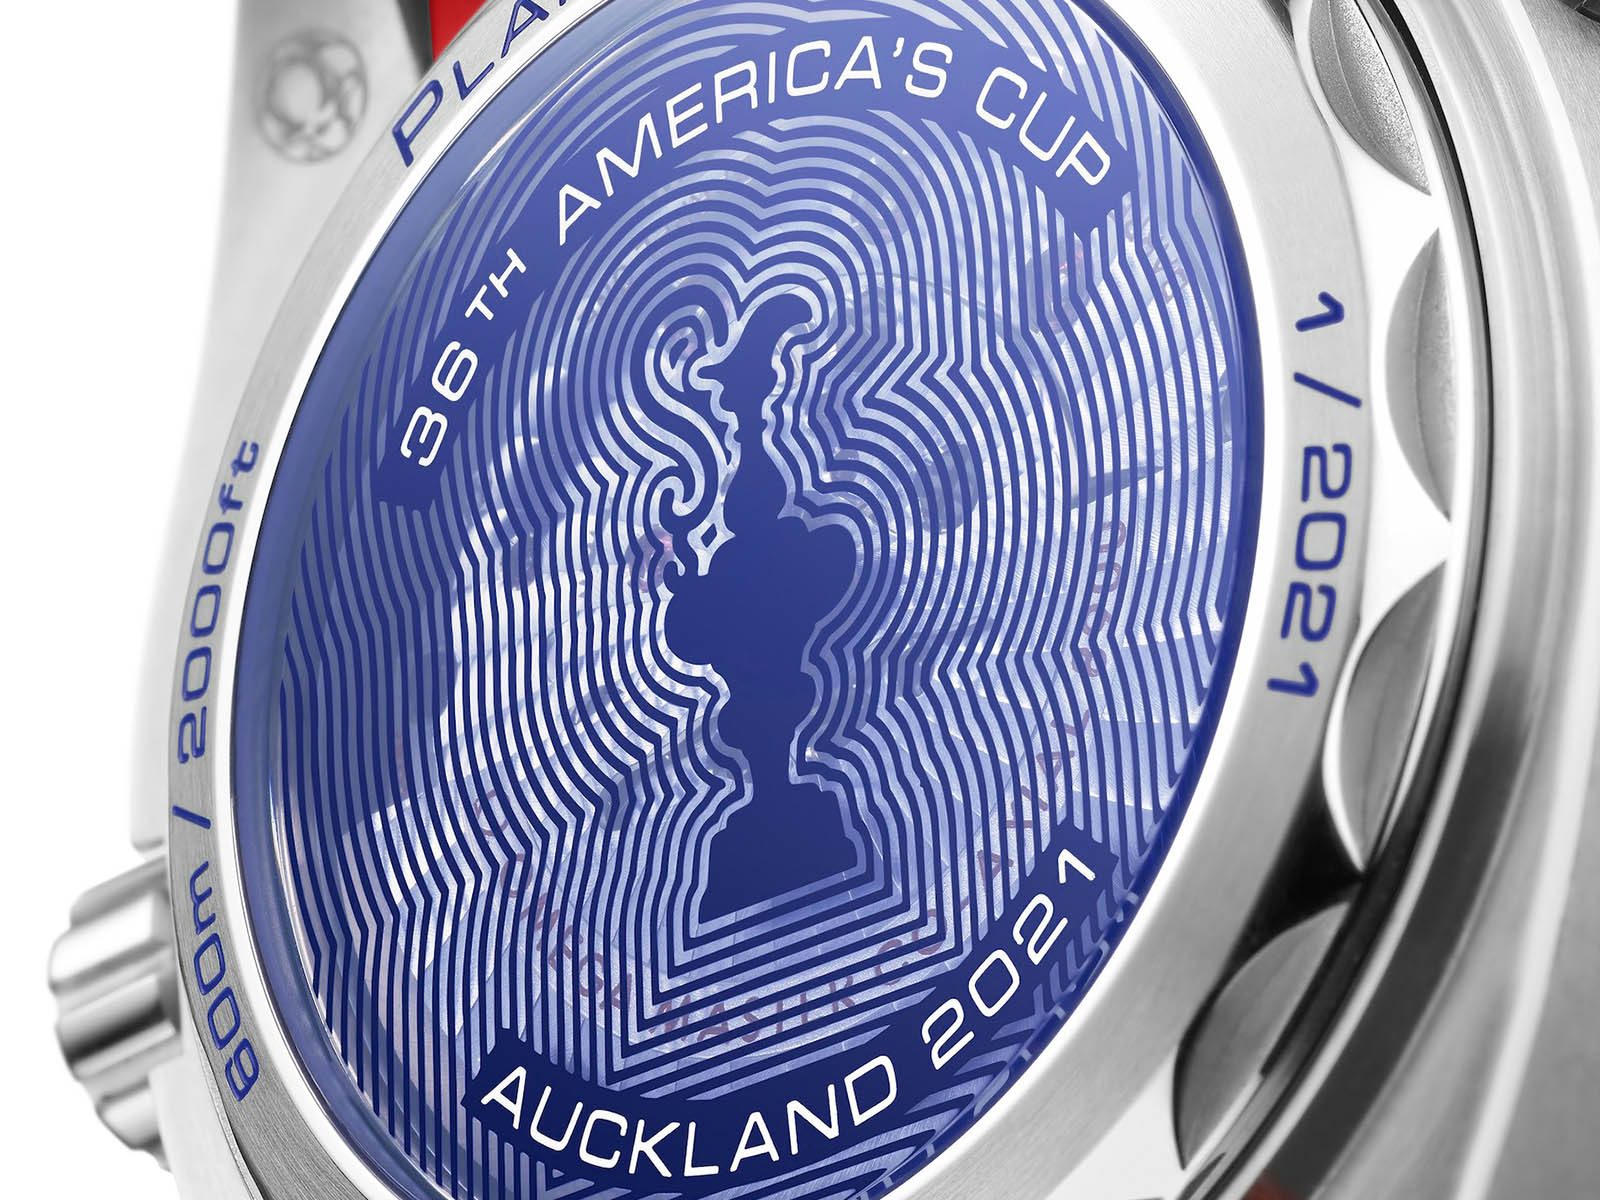 215-32-43-21-04-001-omega-seamaster-planet-ocean-36th-america-s-cup-6.jpg